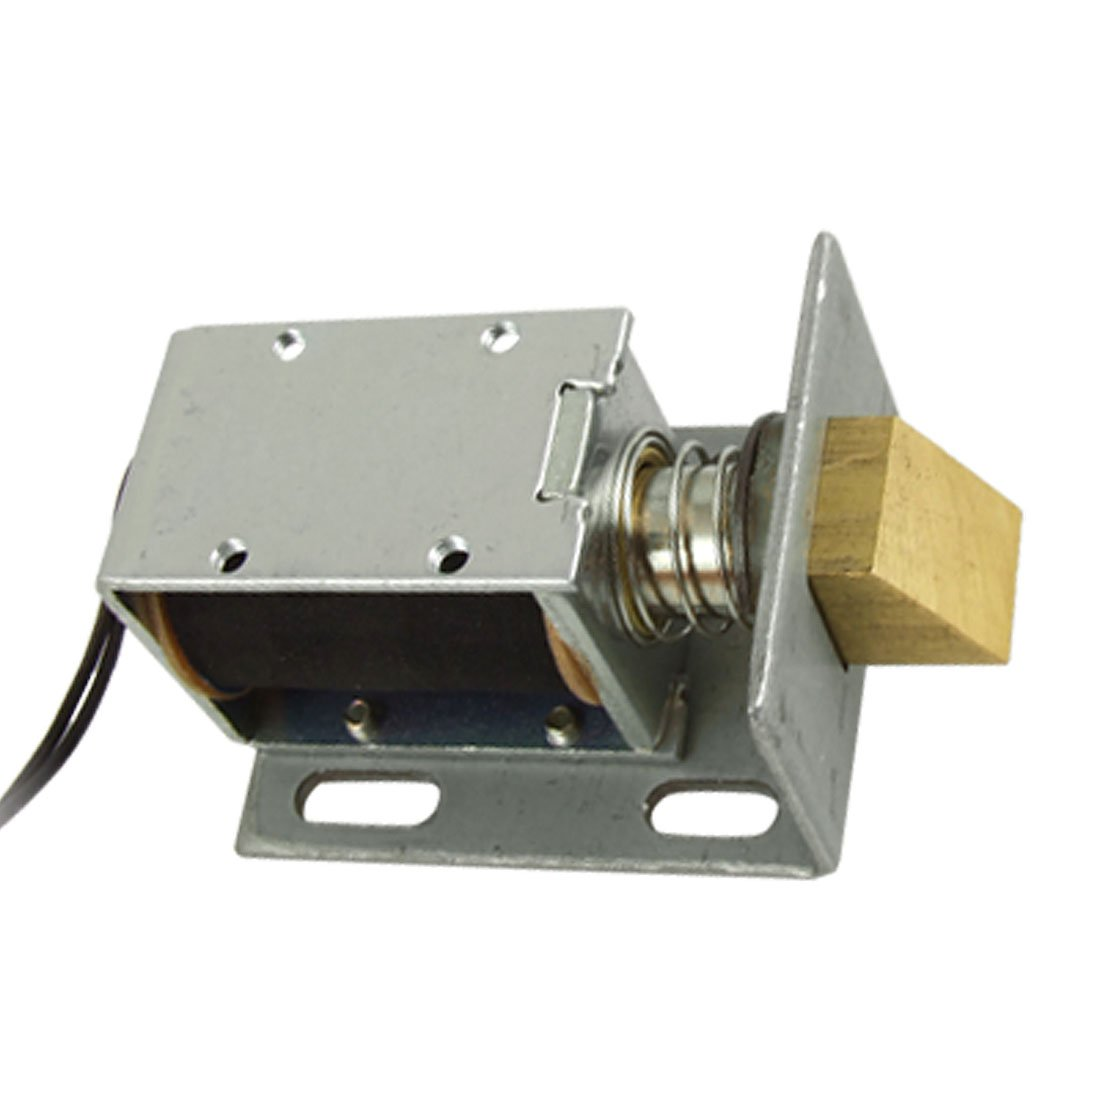 Le Meilleur Amico Dc 12V Open Frame Type Solenoid For Electric Door Ce Mois Ci